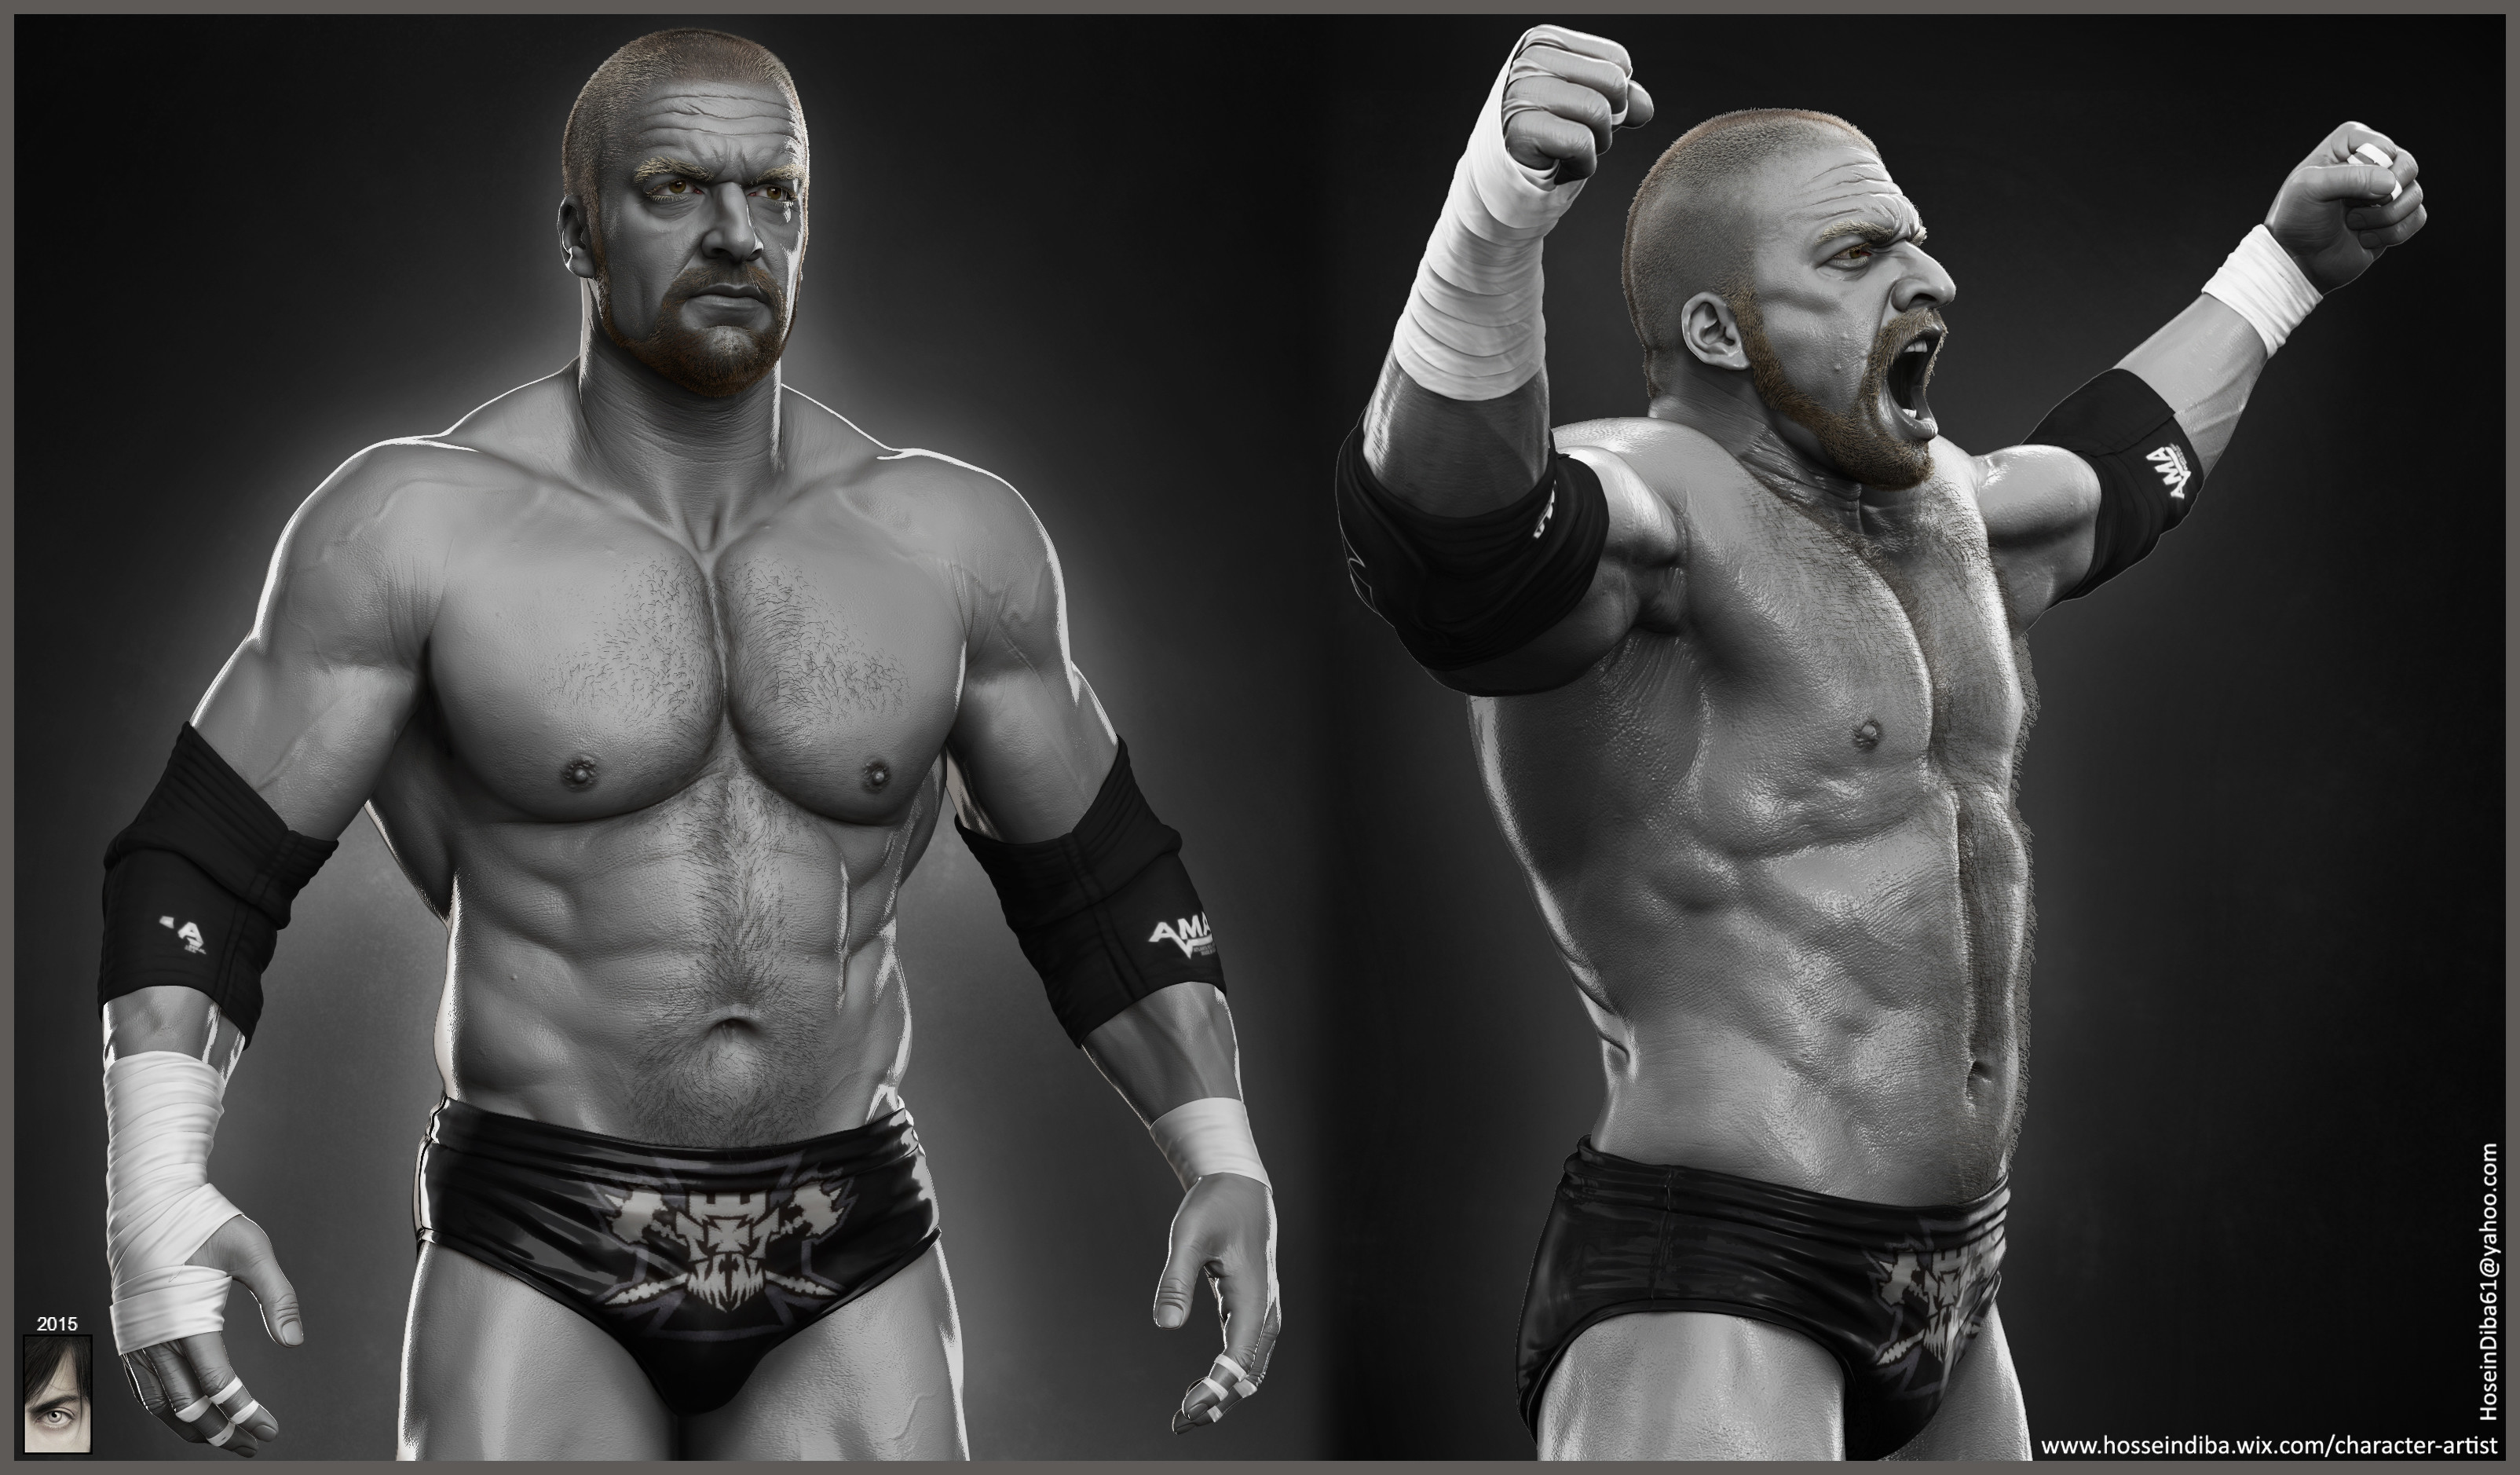 Triple H done for WWE by Hossein Diba 3209px X 1878px